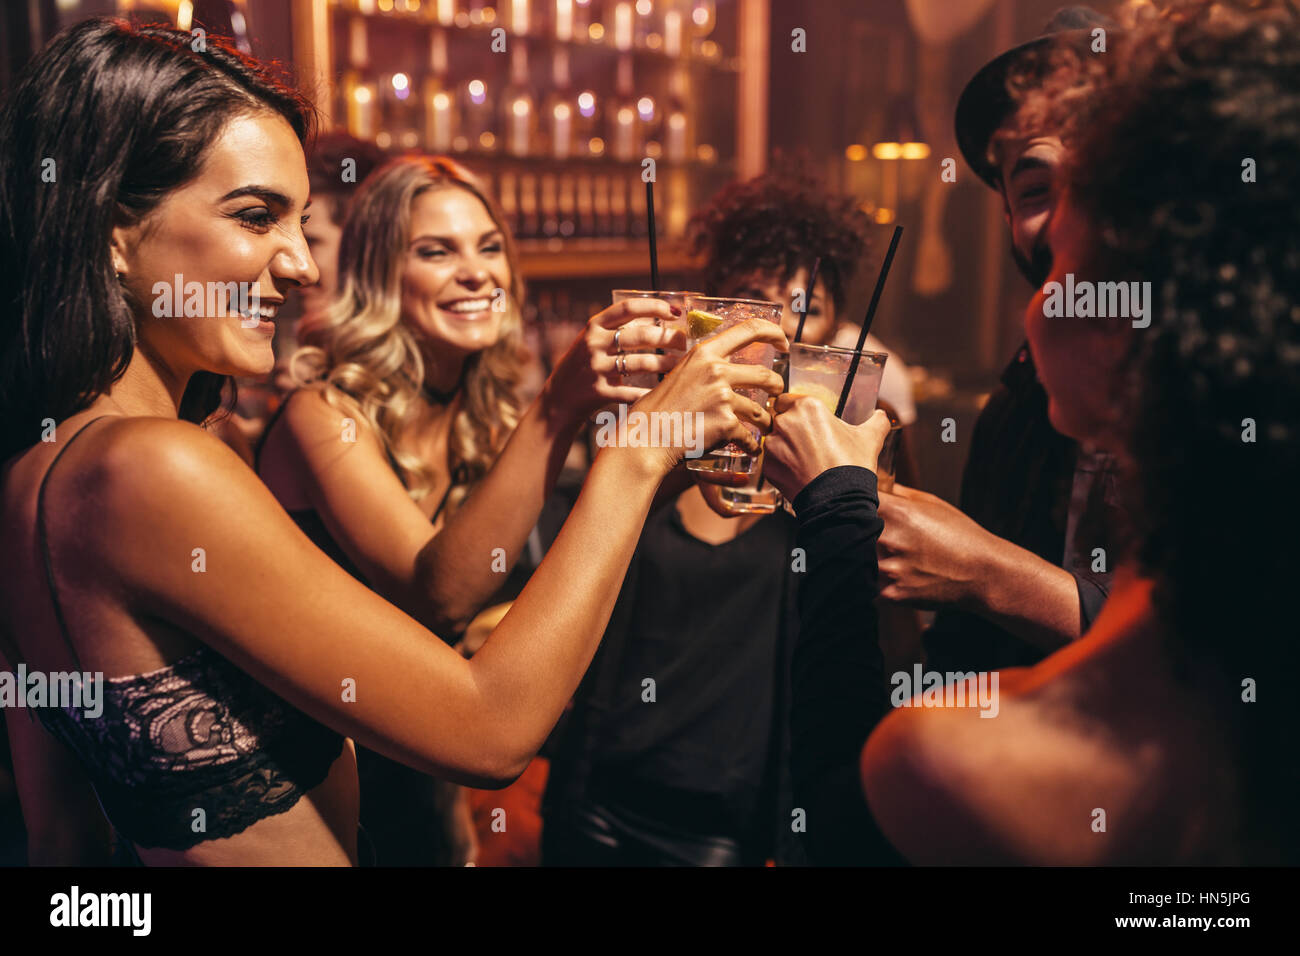 Group of young people with cocktails at nightclub. Best friends partying in a pub and toasting drinks. Stock Photo